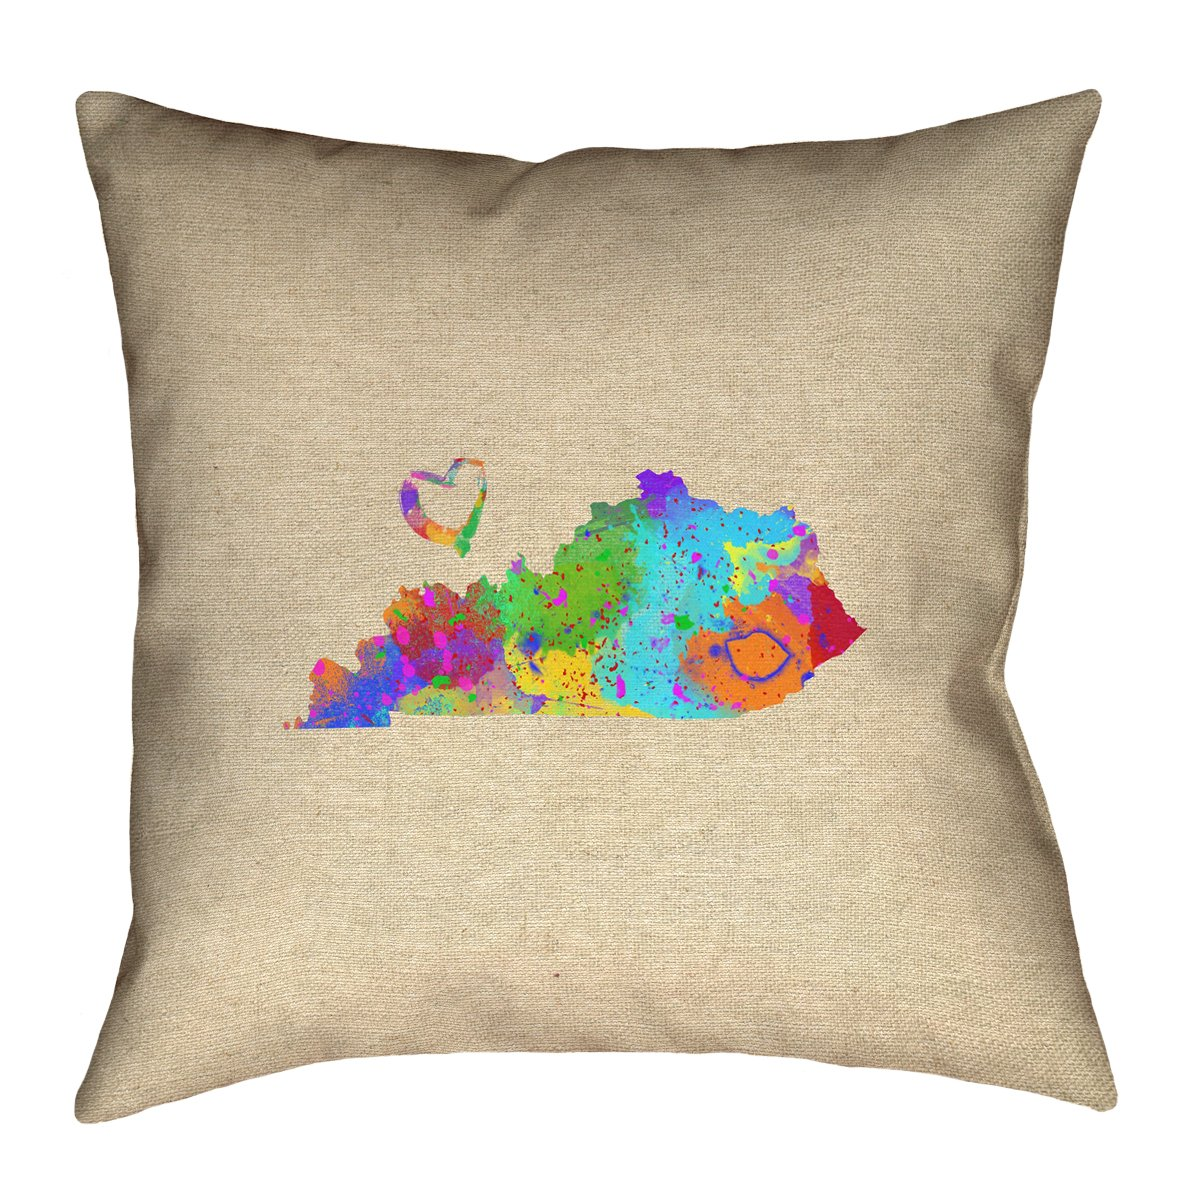 ArtVerse Katelyn Smith 28 x 28 Floor Double Sided Print with Concealed Zipper /& Insert Kentucky Love Watercolor Pillow